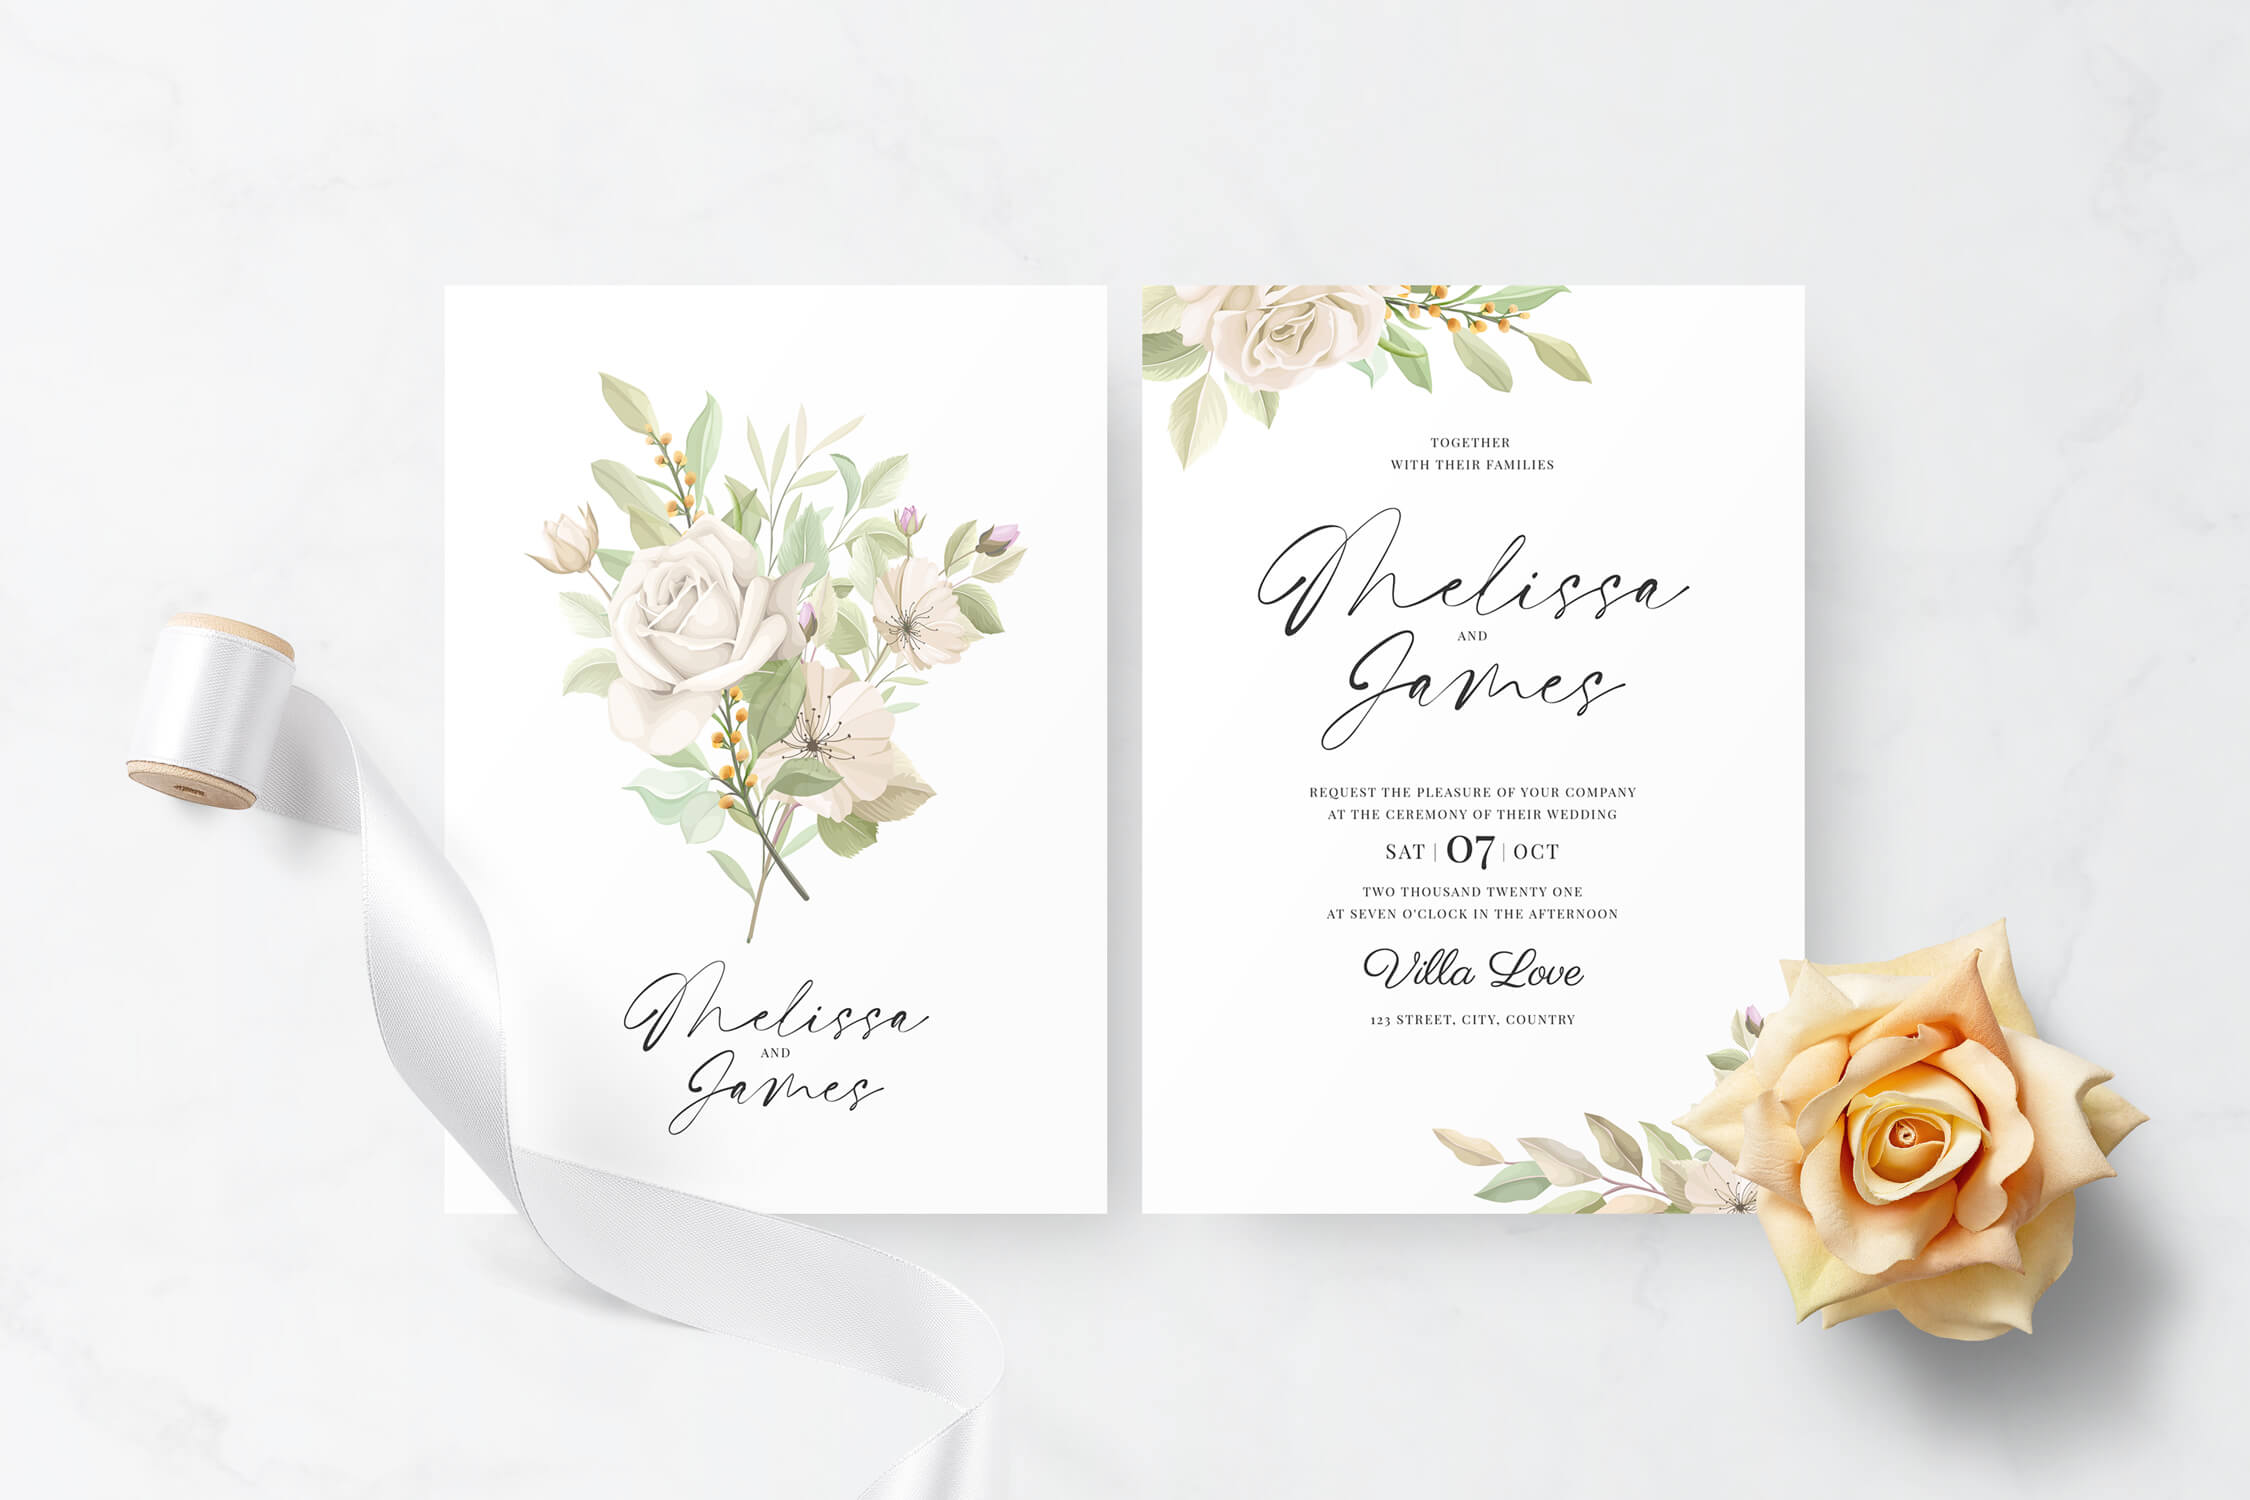 Basari Design - Invitation 002